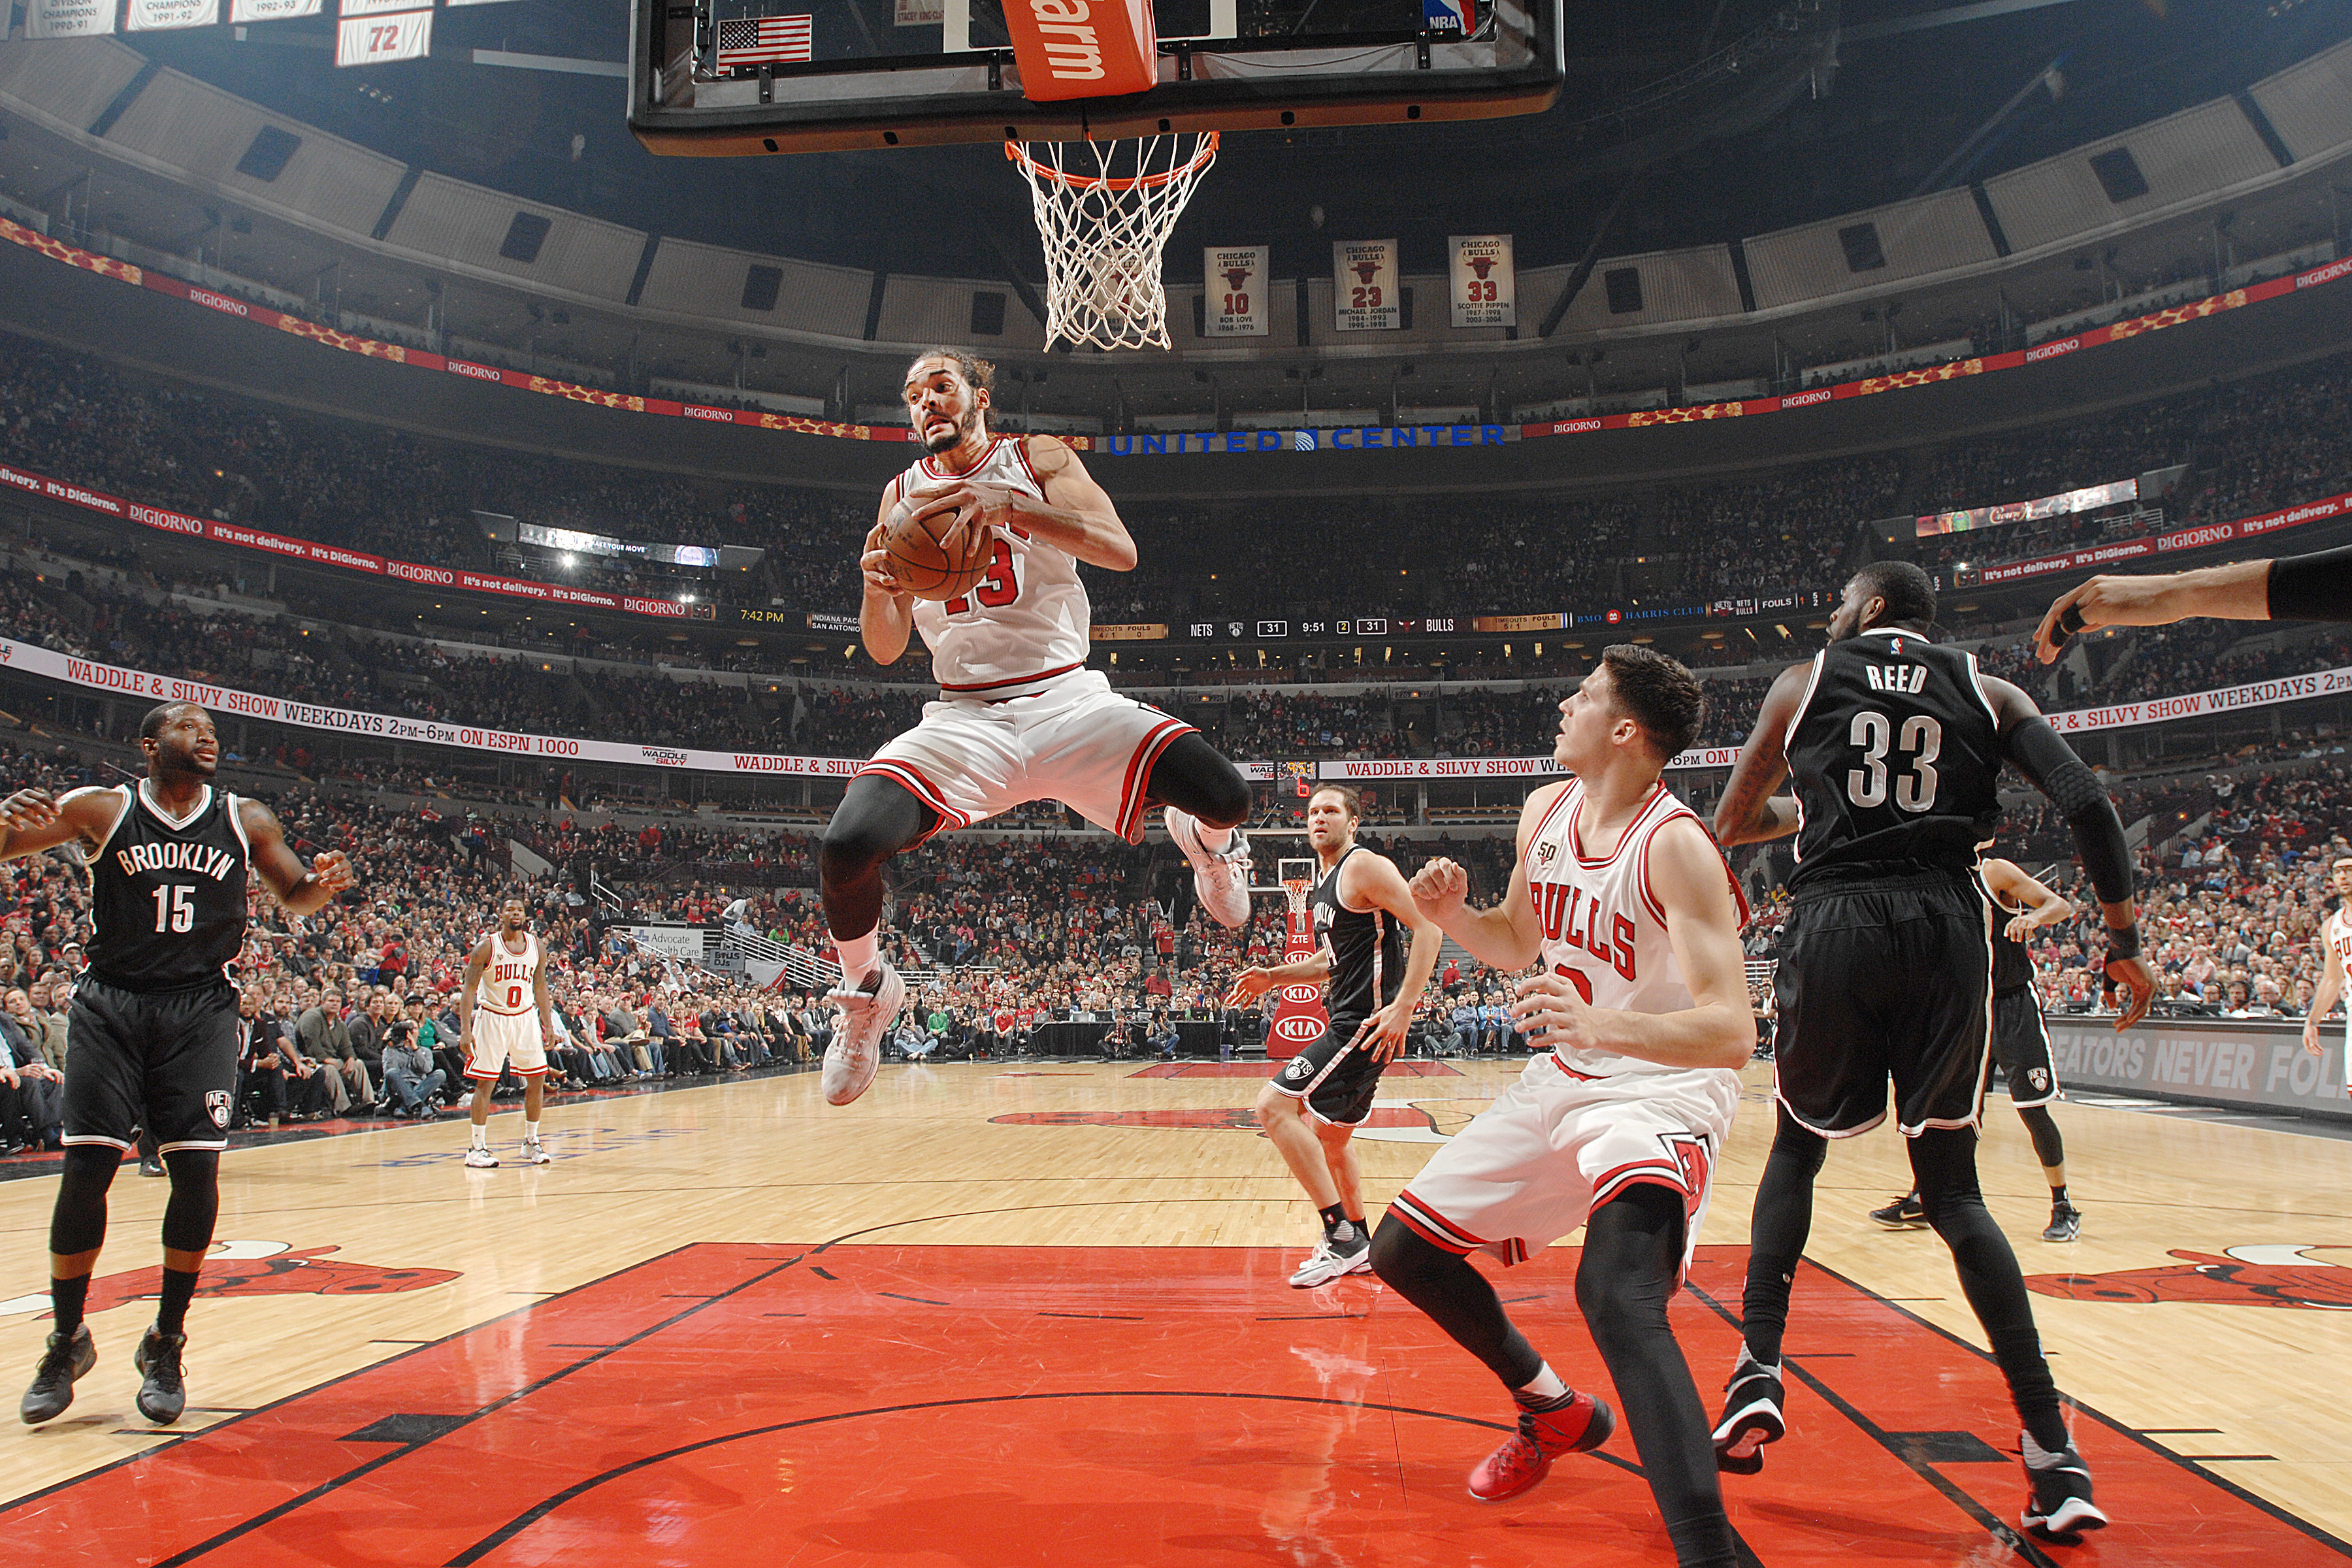 CHICAGO, IL - DECEMBER 21: Joakim Noah #13 of the Chicago Bulls grabs the rebound against the Brooklyn Nets on December 21, 2015 at the United Center in Chicago, Illinois. NOTE TO USER: User expressly acknowledges and agrees that, by downloading and or using this photograph, user is consenting to the terms and conditions of the Getty Images License Agreement. Mandatory Copyright Notice: Copyright 2015 NBAE (Photo by Randy Belice/NBAE via Getty Images)